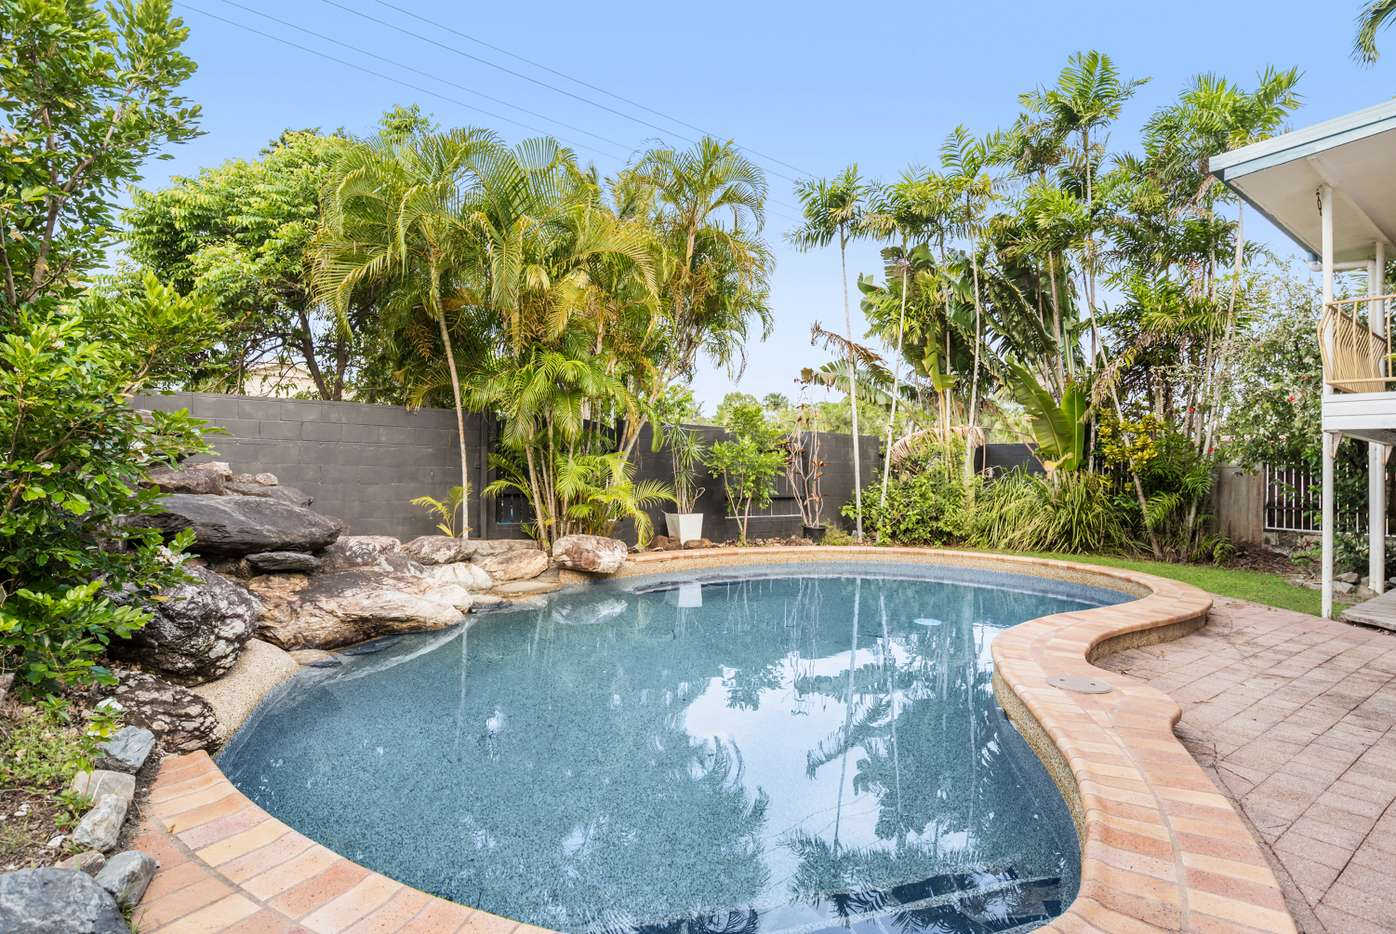 Main view of Homely house listing, 101 Callaghan St, Mooroobool, QLD 4870